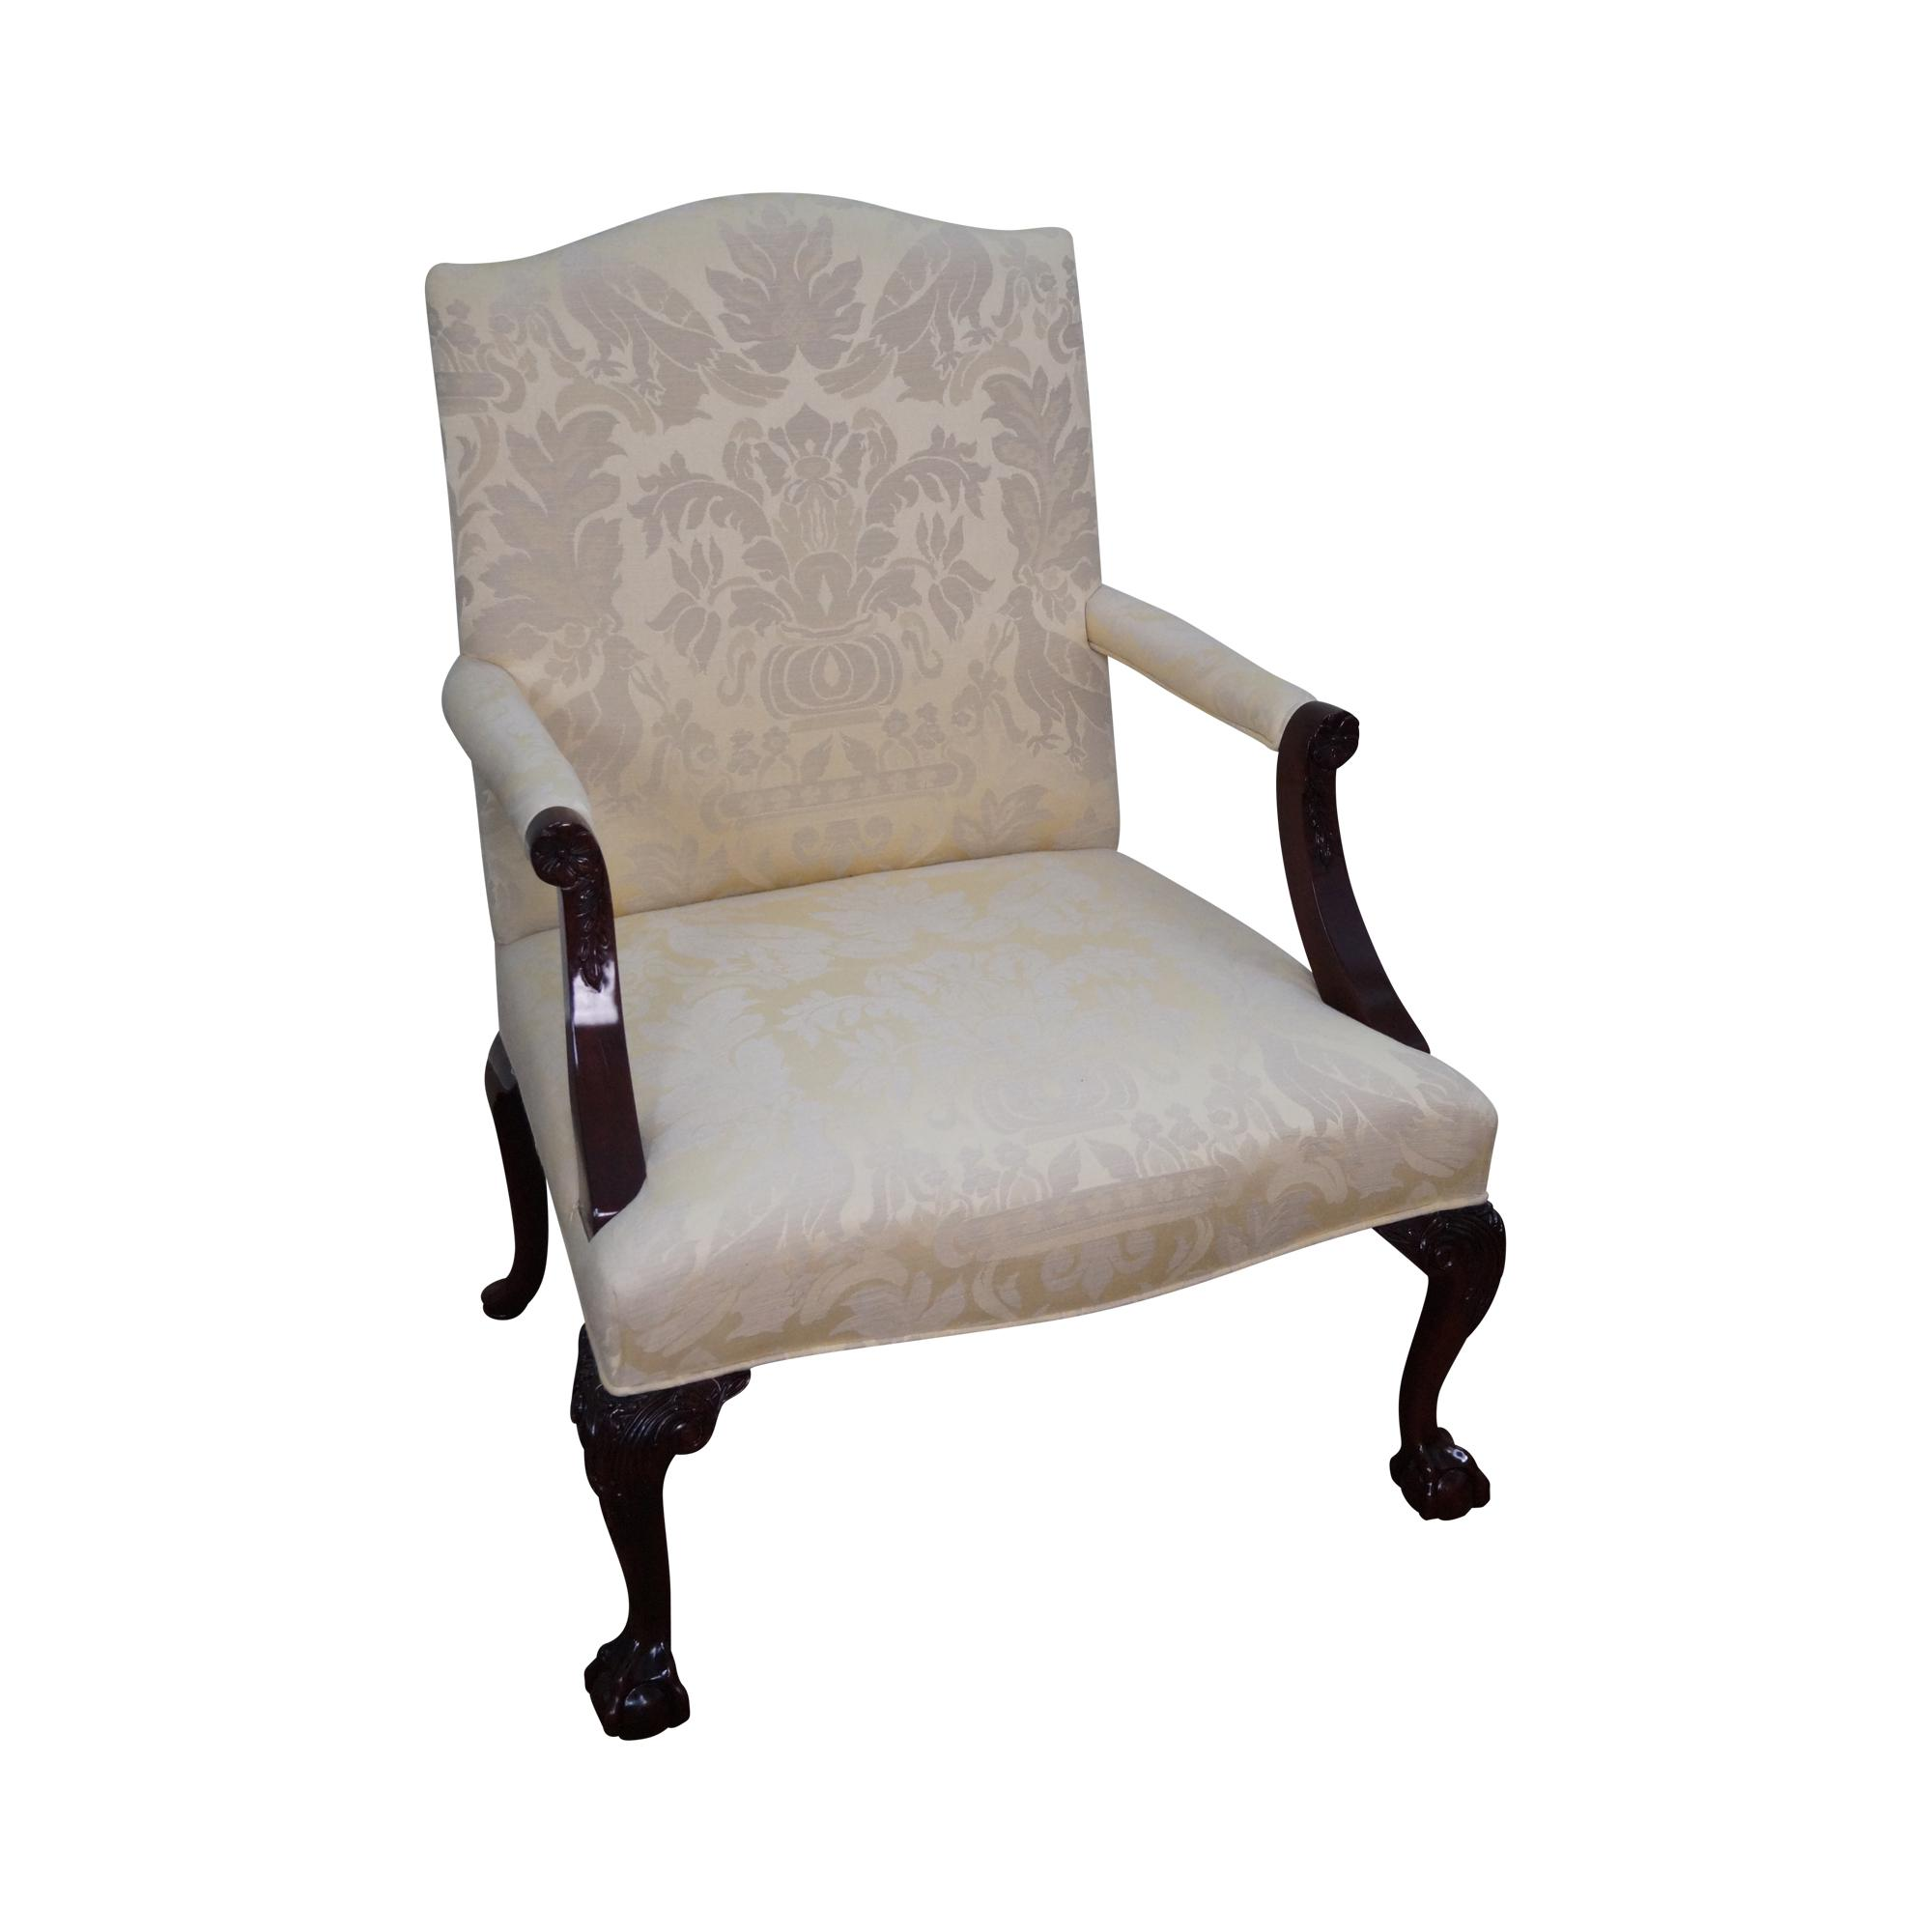 chippendale rocking chair revolving hydraulic kindel mahogany style library arm chairish